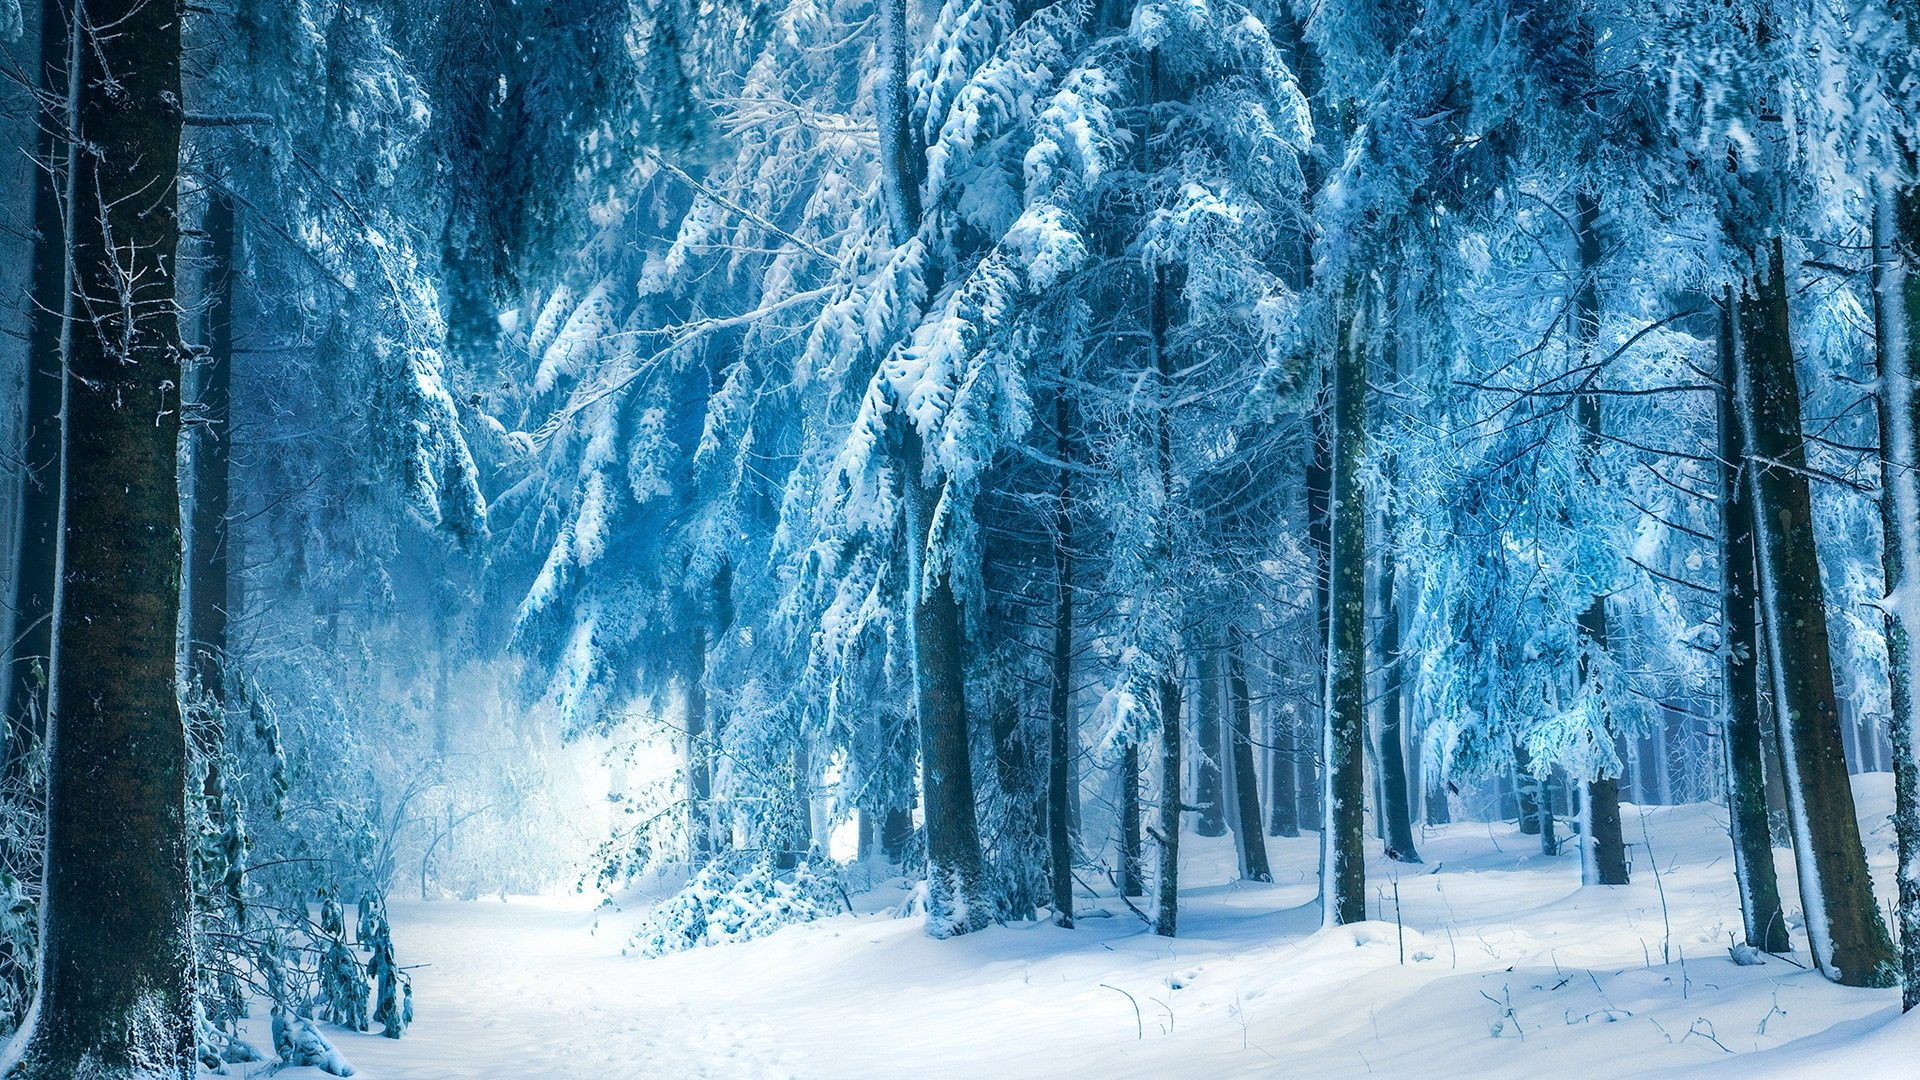 vunature.com-trees-snow-nature-seasons-landscapes-winter-roads-trail-path-forest-hd-picture-free-1920x1080.jpg